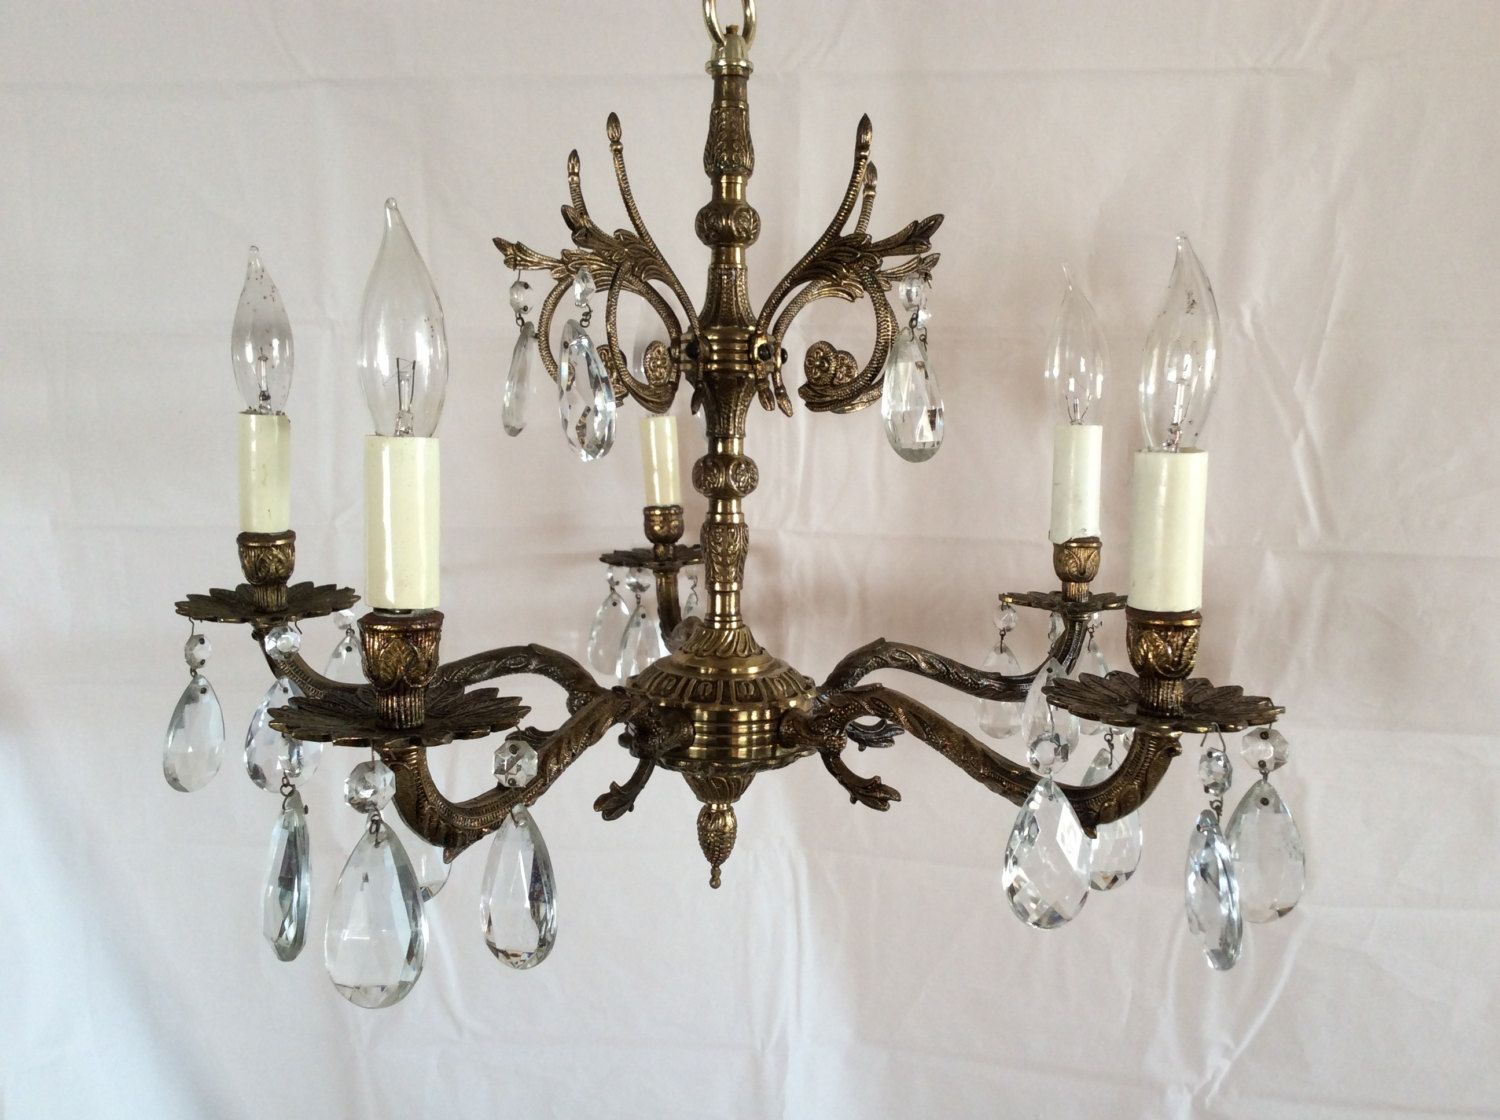 Antique Vintage Brass Crystal Chandelier Made in Spain 1930s - Antique Vintage Brass Crystal Chandelier Made In Spain 1930s Old